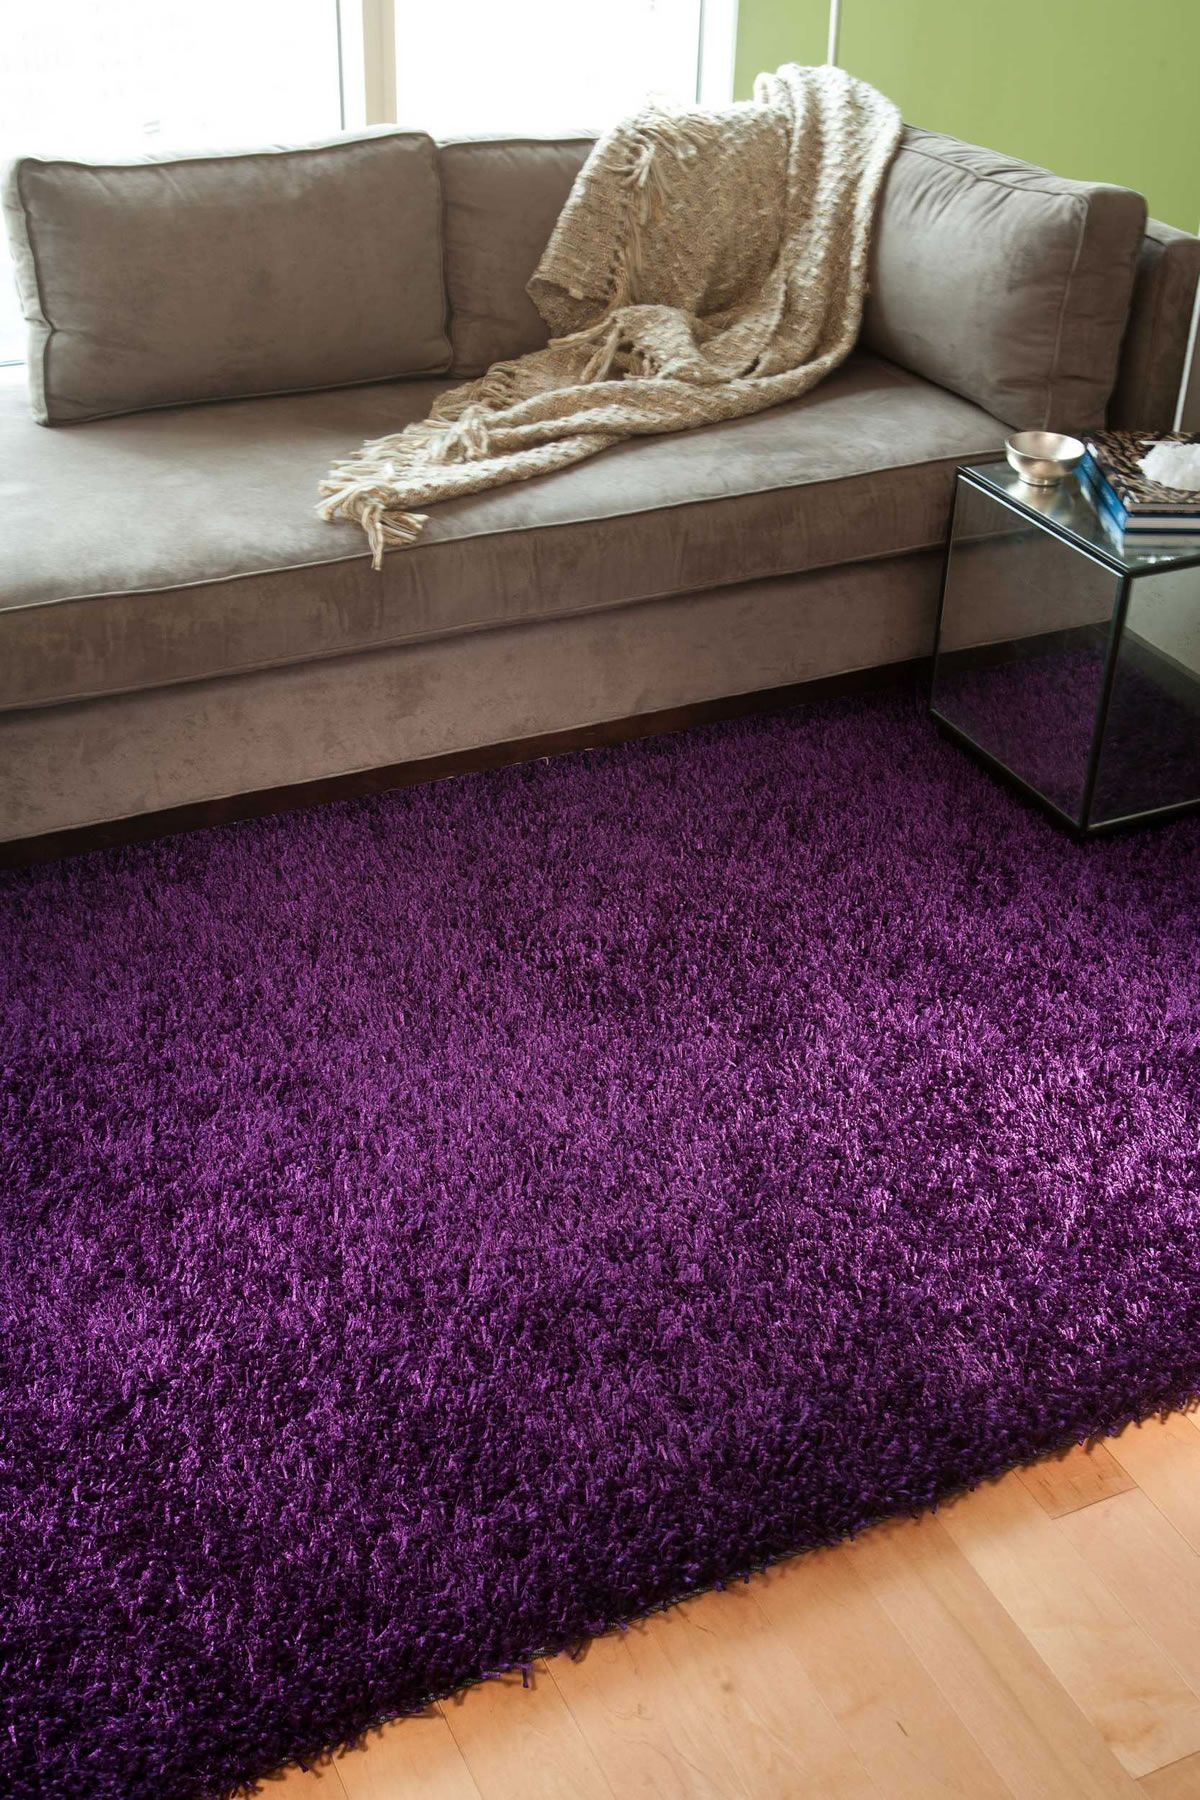 Purple Shag Rugs Are Simply Amazing!